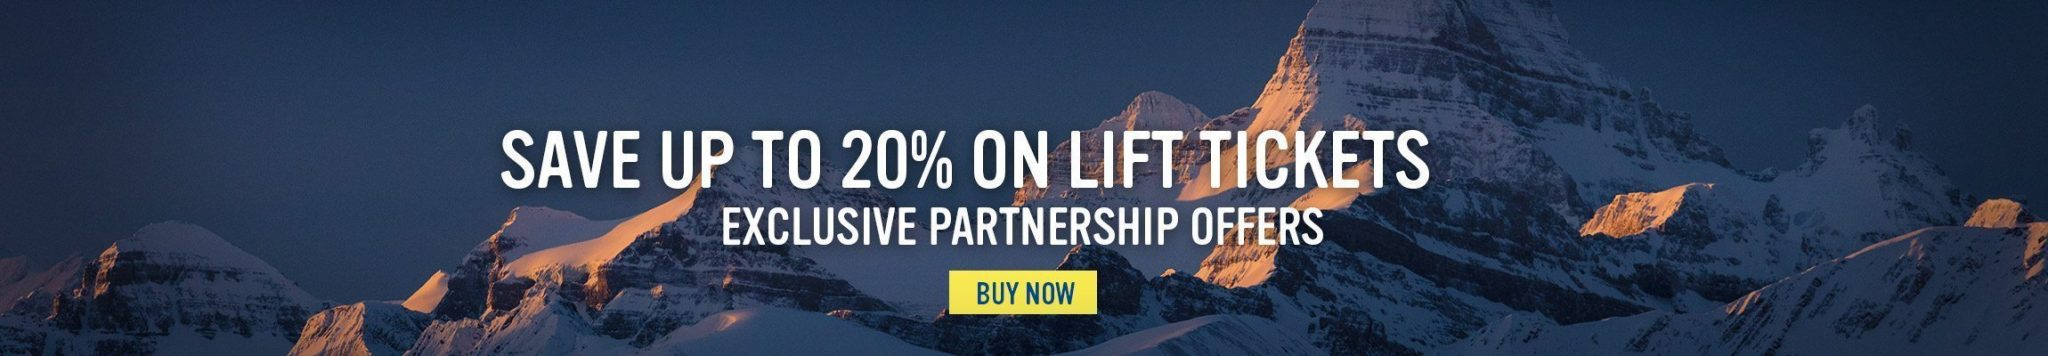 Save 20% on Lift Tickets